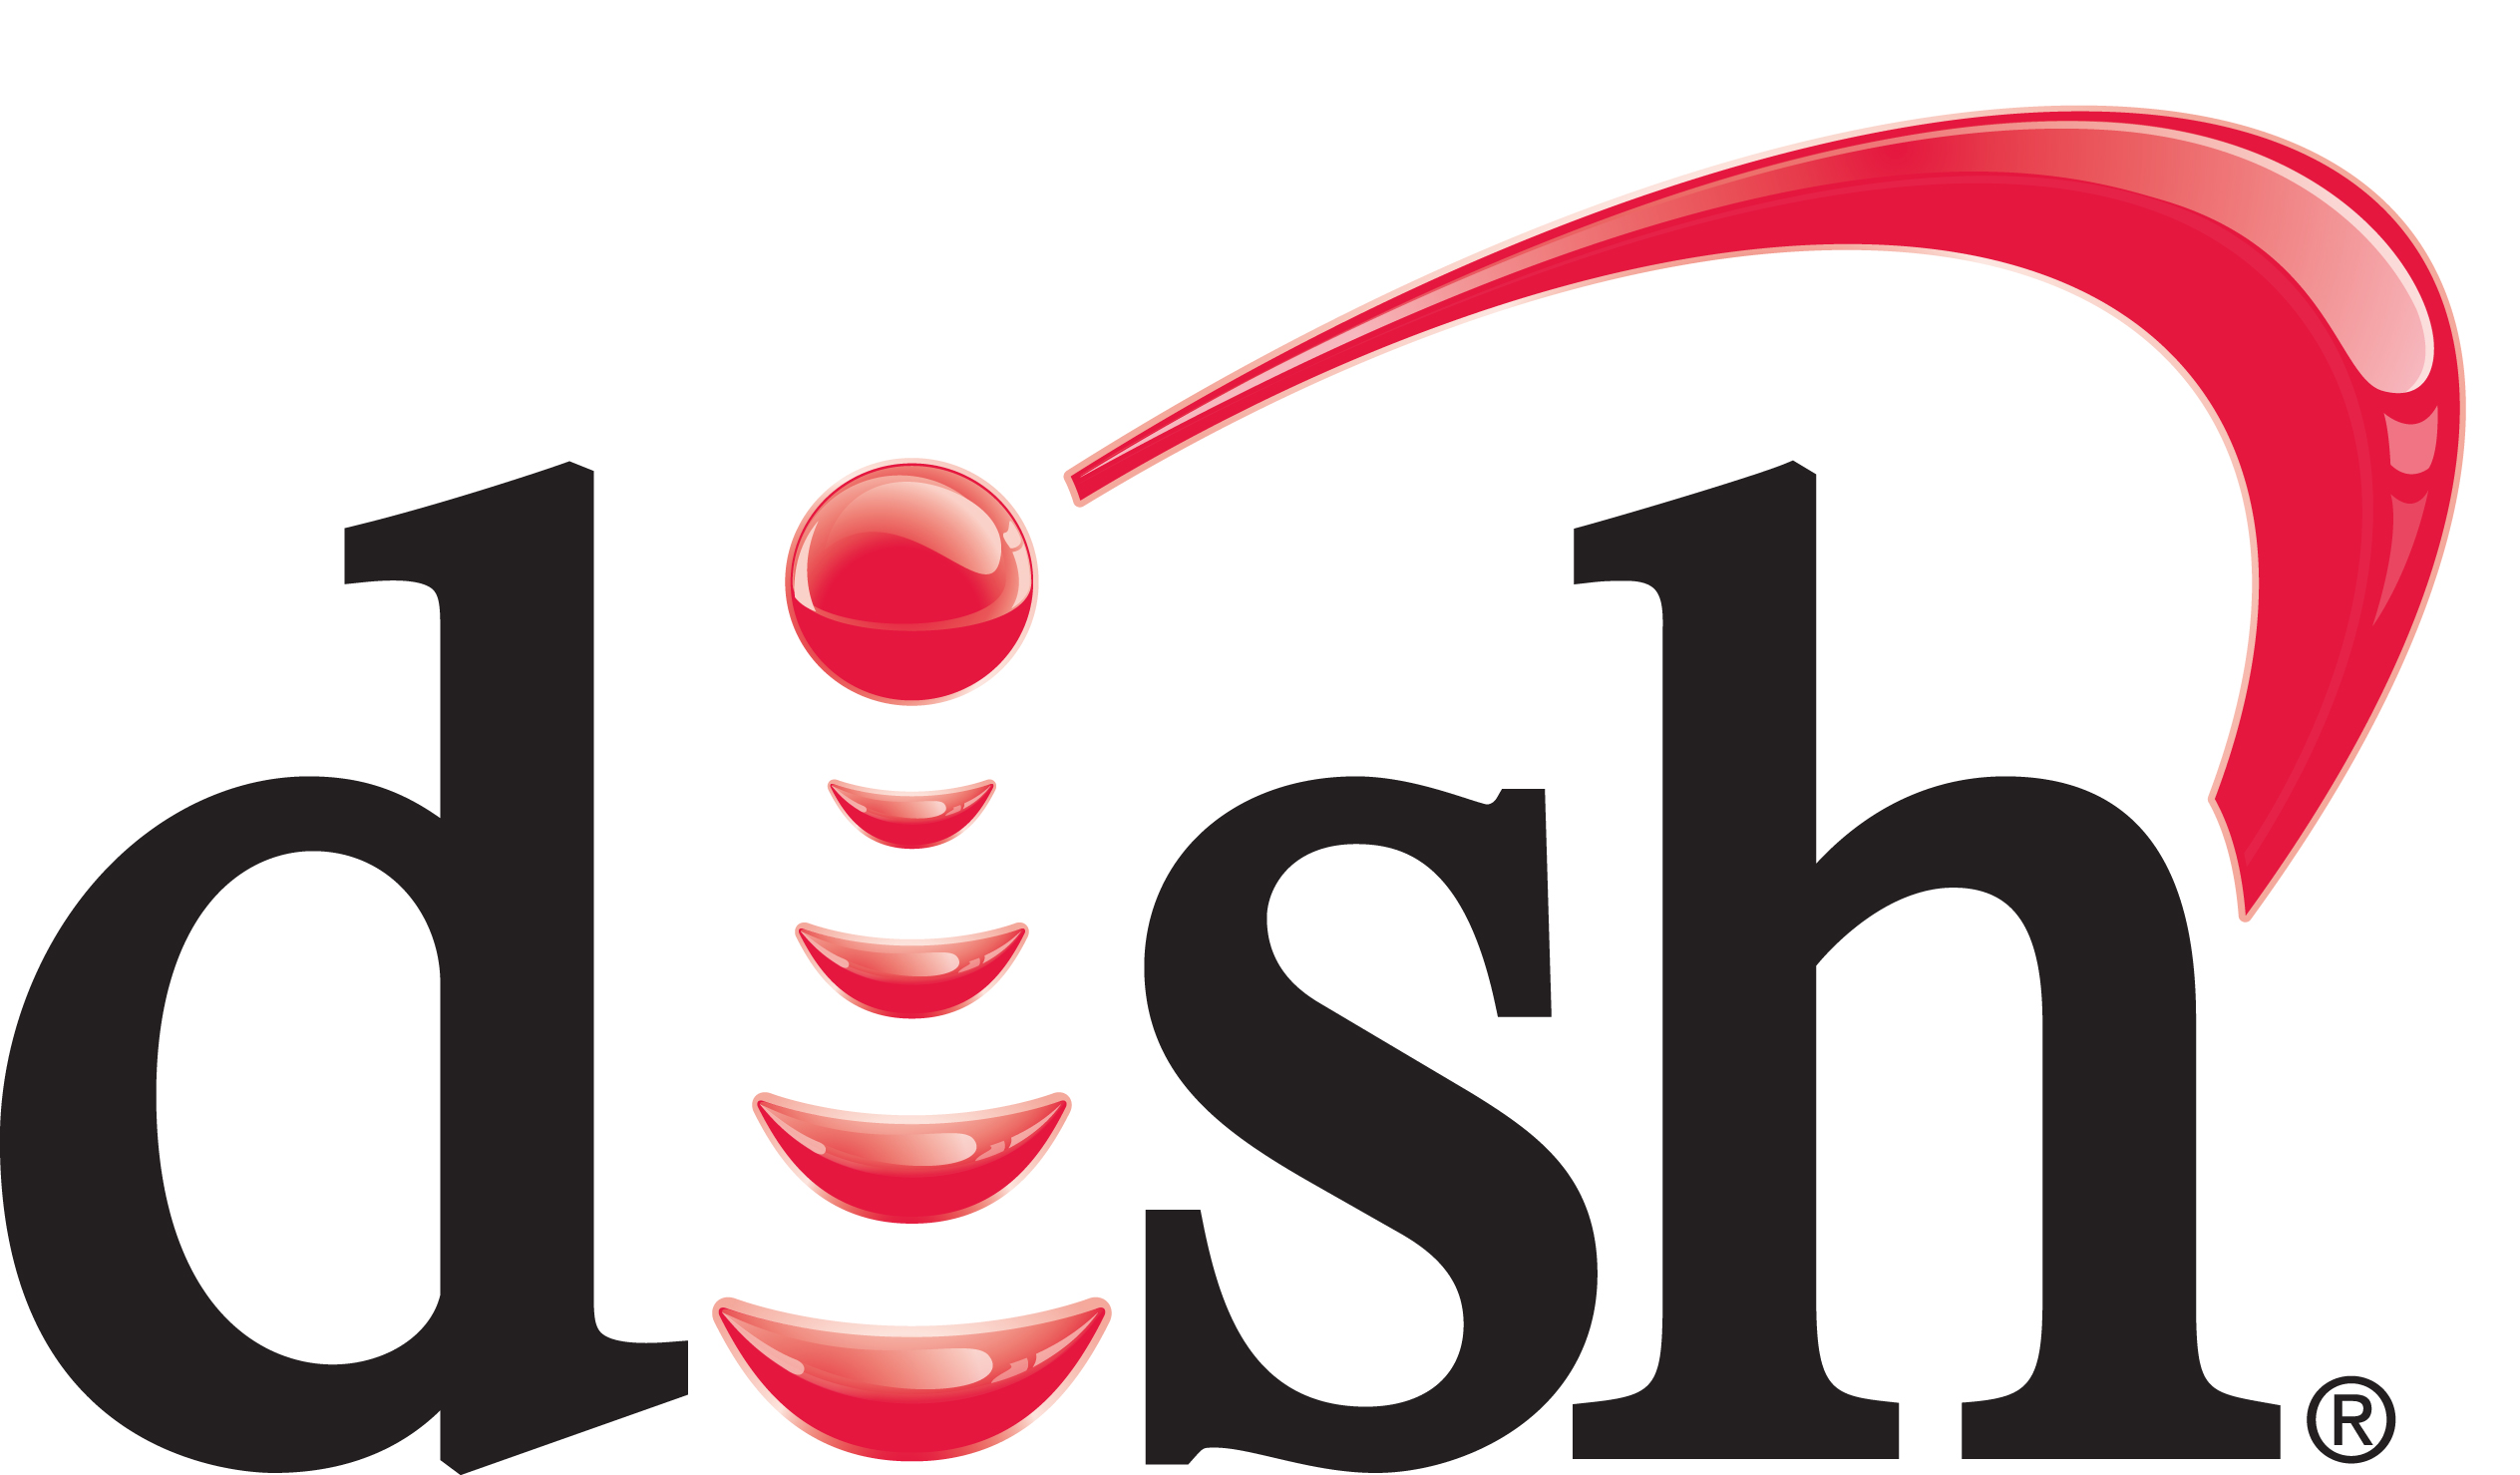 Click here to go to the Dish Network website